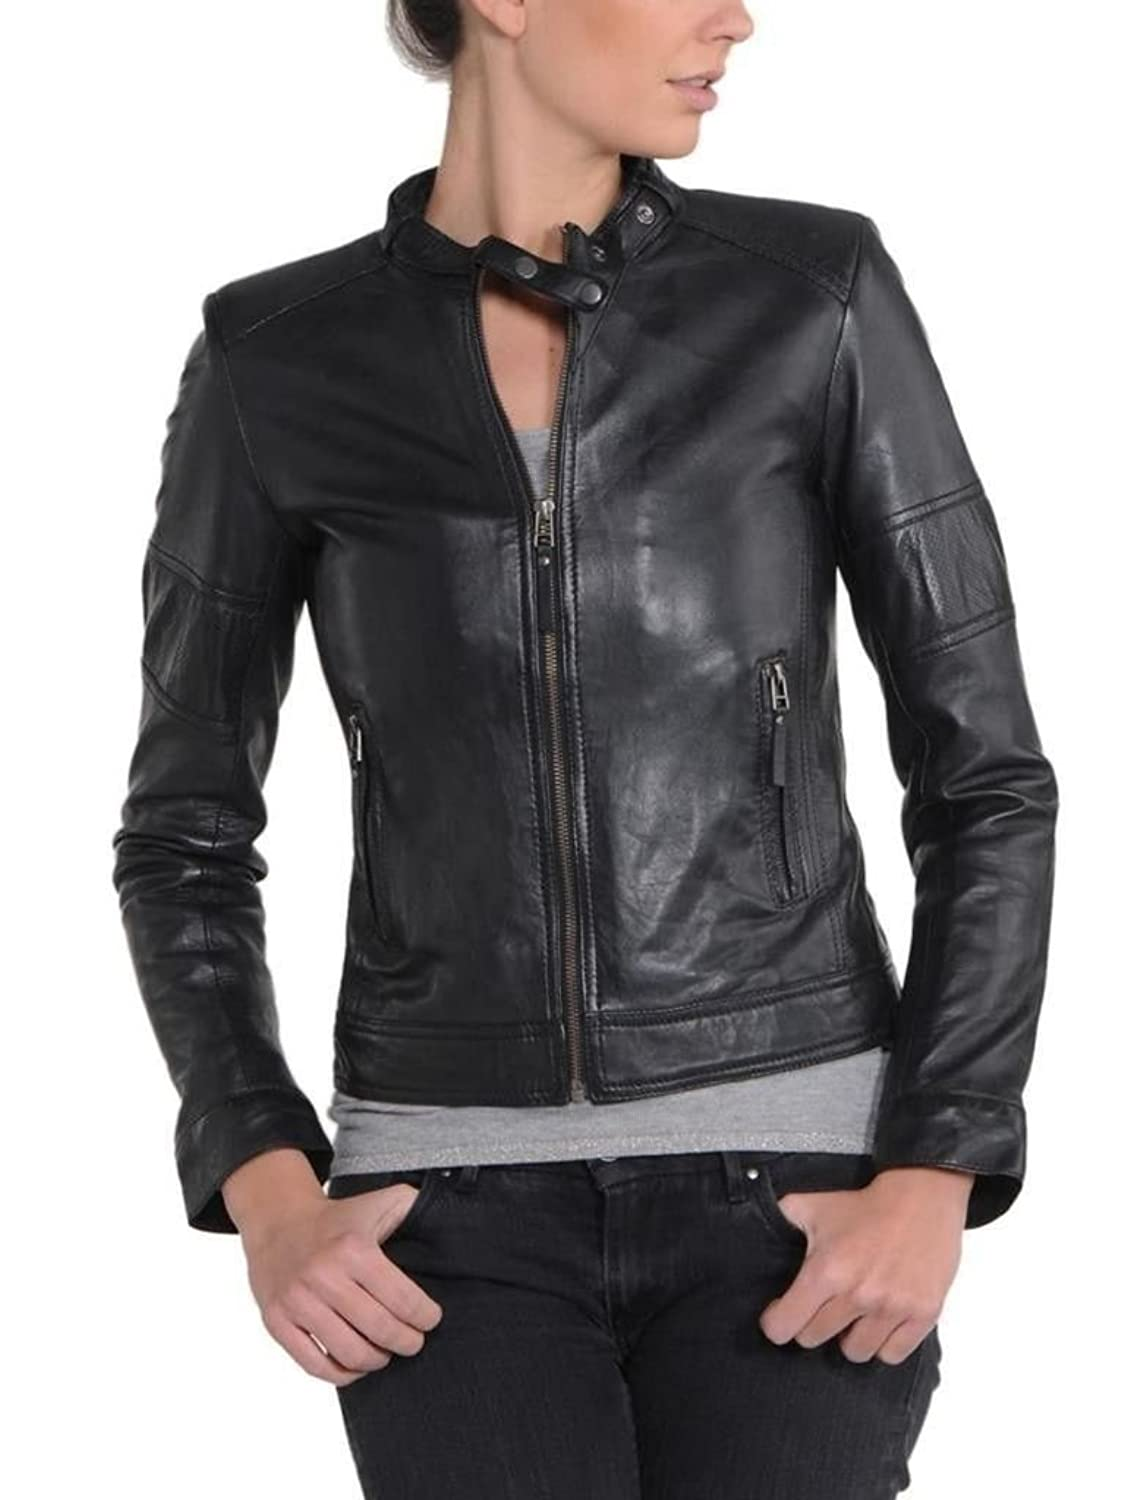 Western Leather Women's Lambskin Leather Bomber Biker Jacket